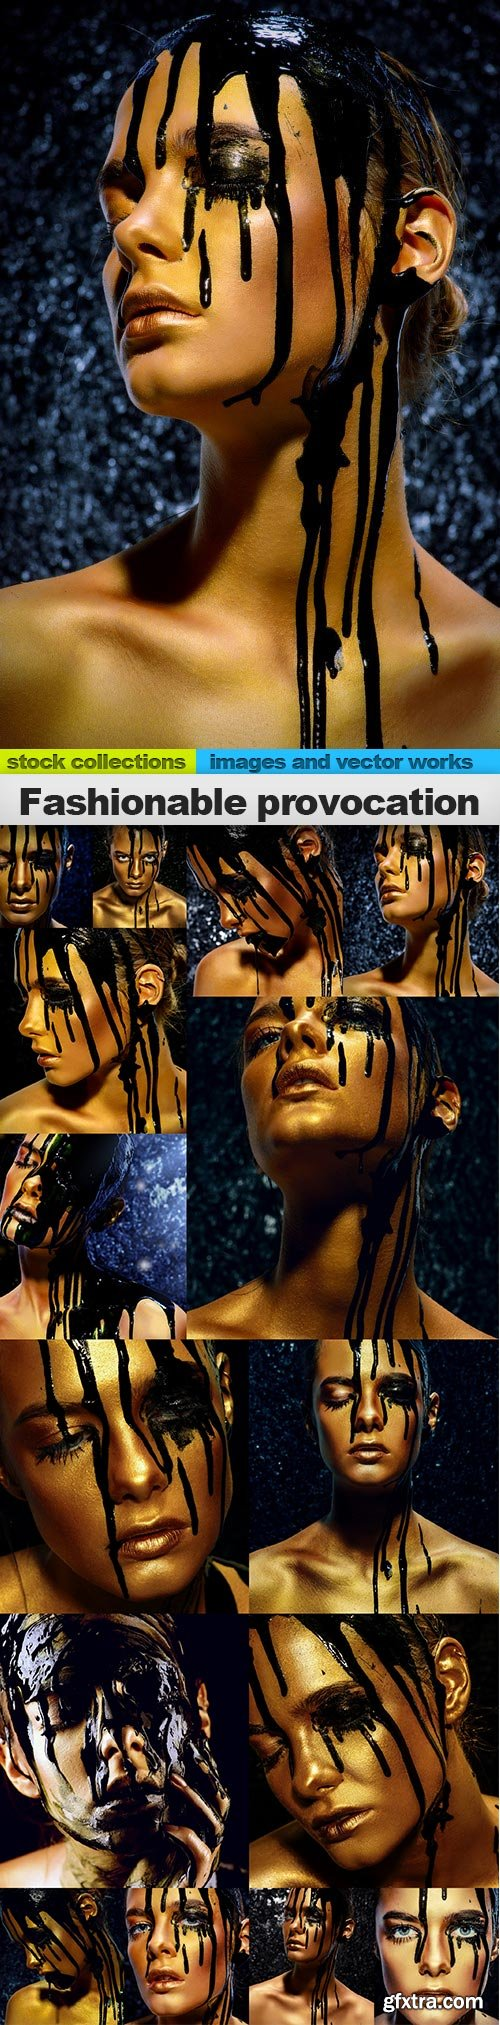 Fashionable provocation, 15 x UHQ JPEG